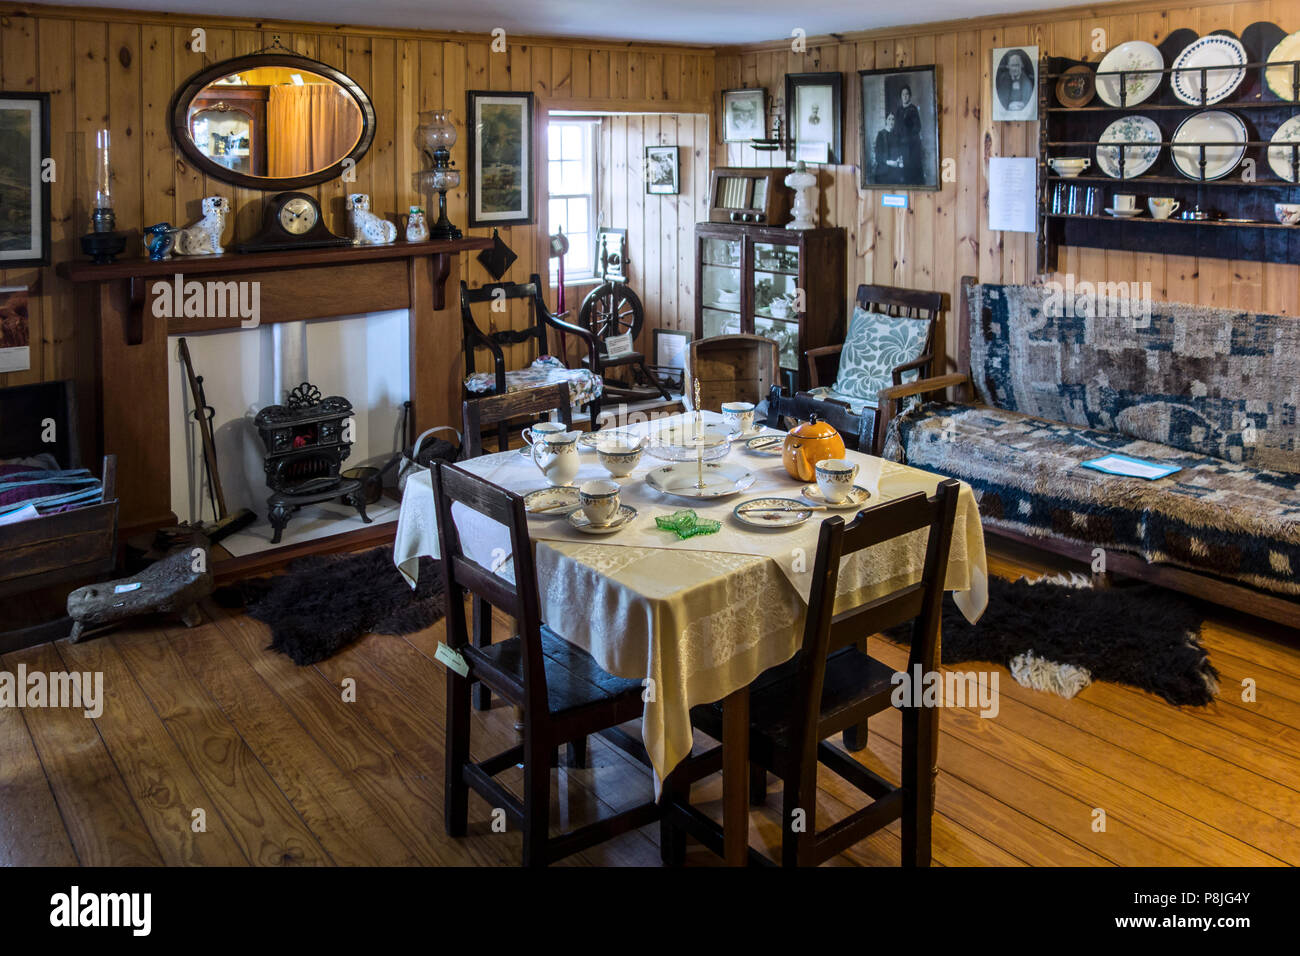 19th century furniture in the Laird's room / sitting room at the Tangwick Haa Museum at Eshaness in Northmavine, Shetland Islands, Scotland, UK - Stock Image